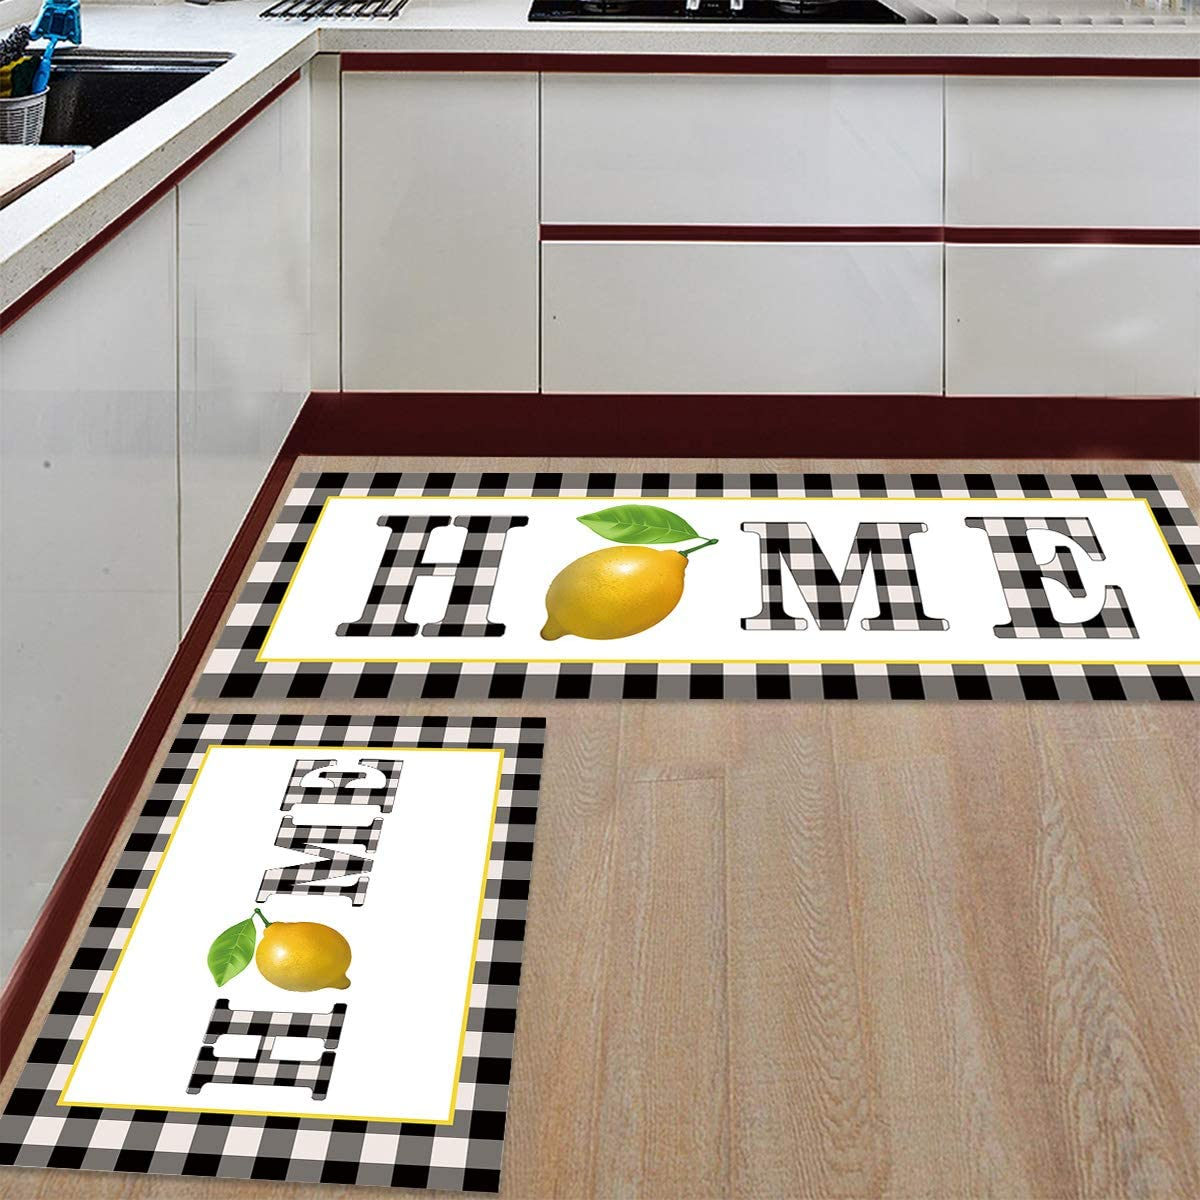 Advancey 2 Pieces Anti-Slip Kitchen Mats Bla Home Limited time for free shipping Lemon Fruit Super special price on